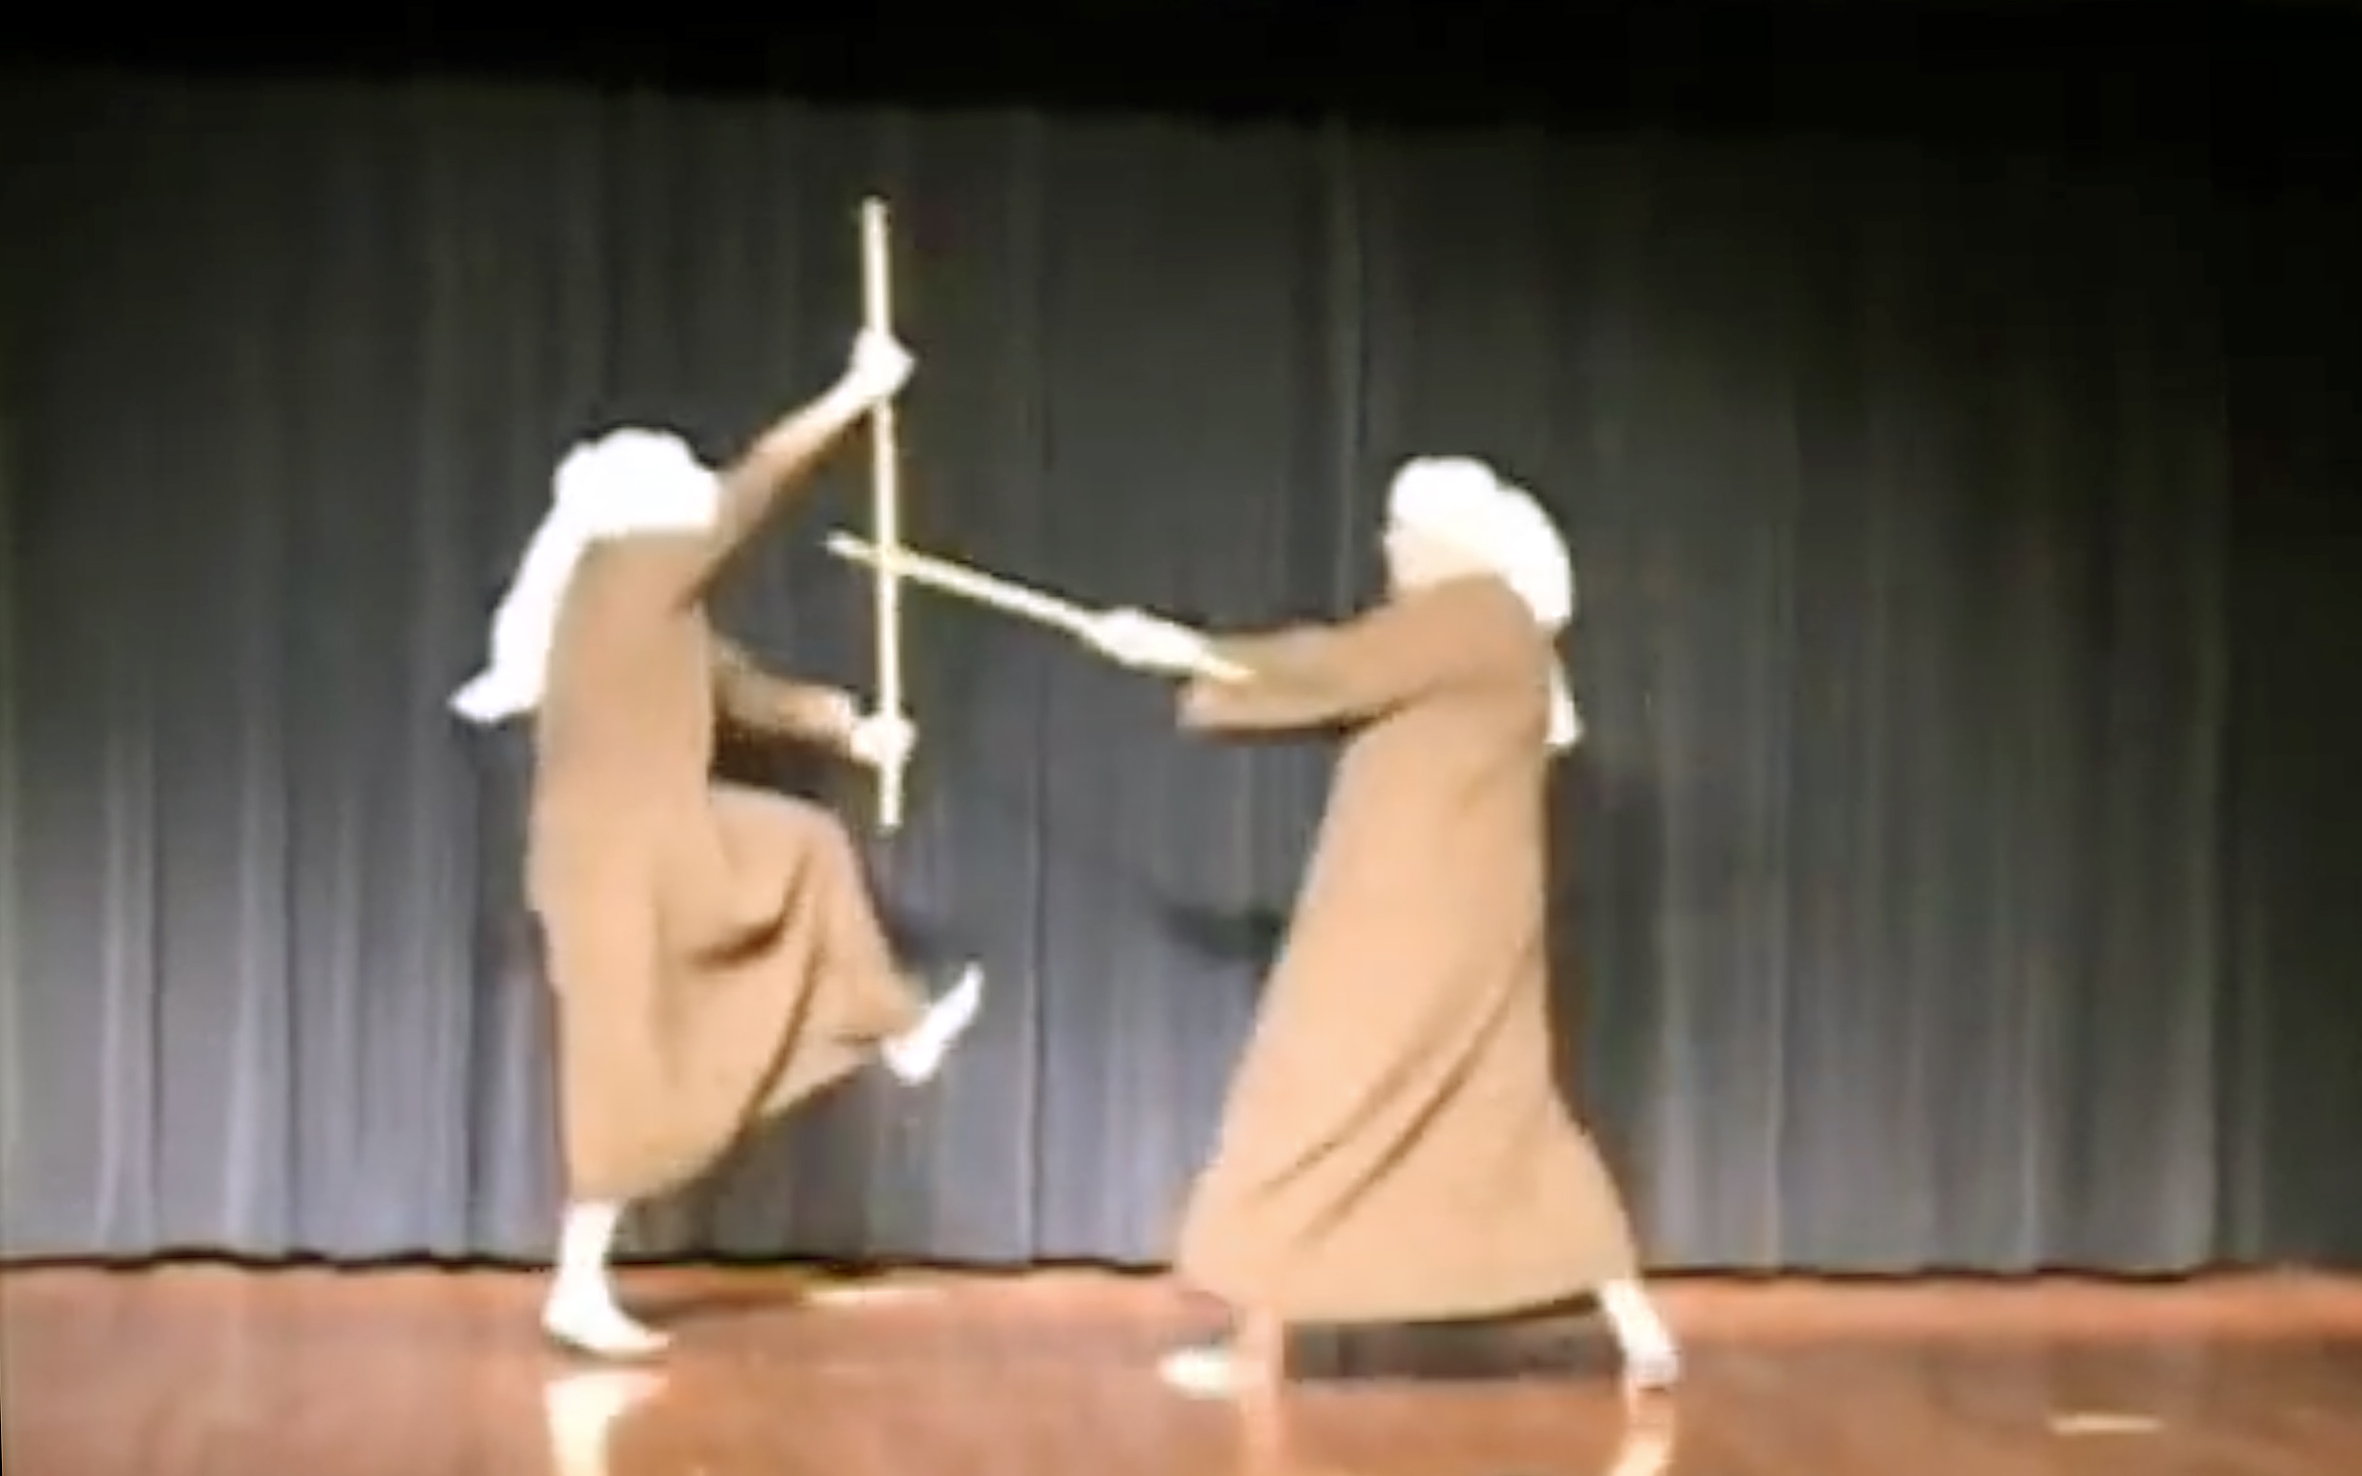 """854.Tahtib / Egypt - Tahtib is coming from """"Hatab"""" which means wooden sticks. It is a kind of dance,that has a long history in upper Egypt and a lot of masculine exhibitionism. It is related to such qualities as honour, courage and power."""